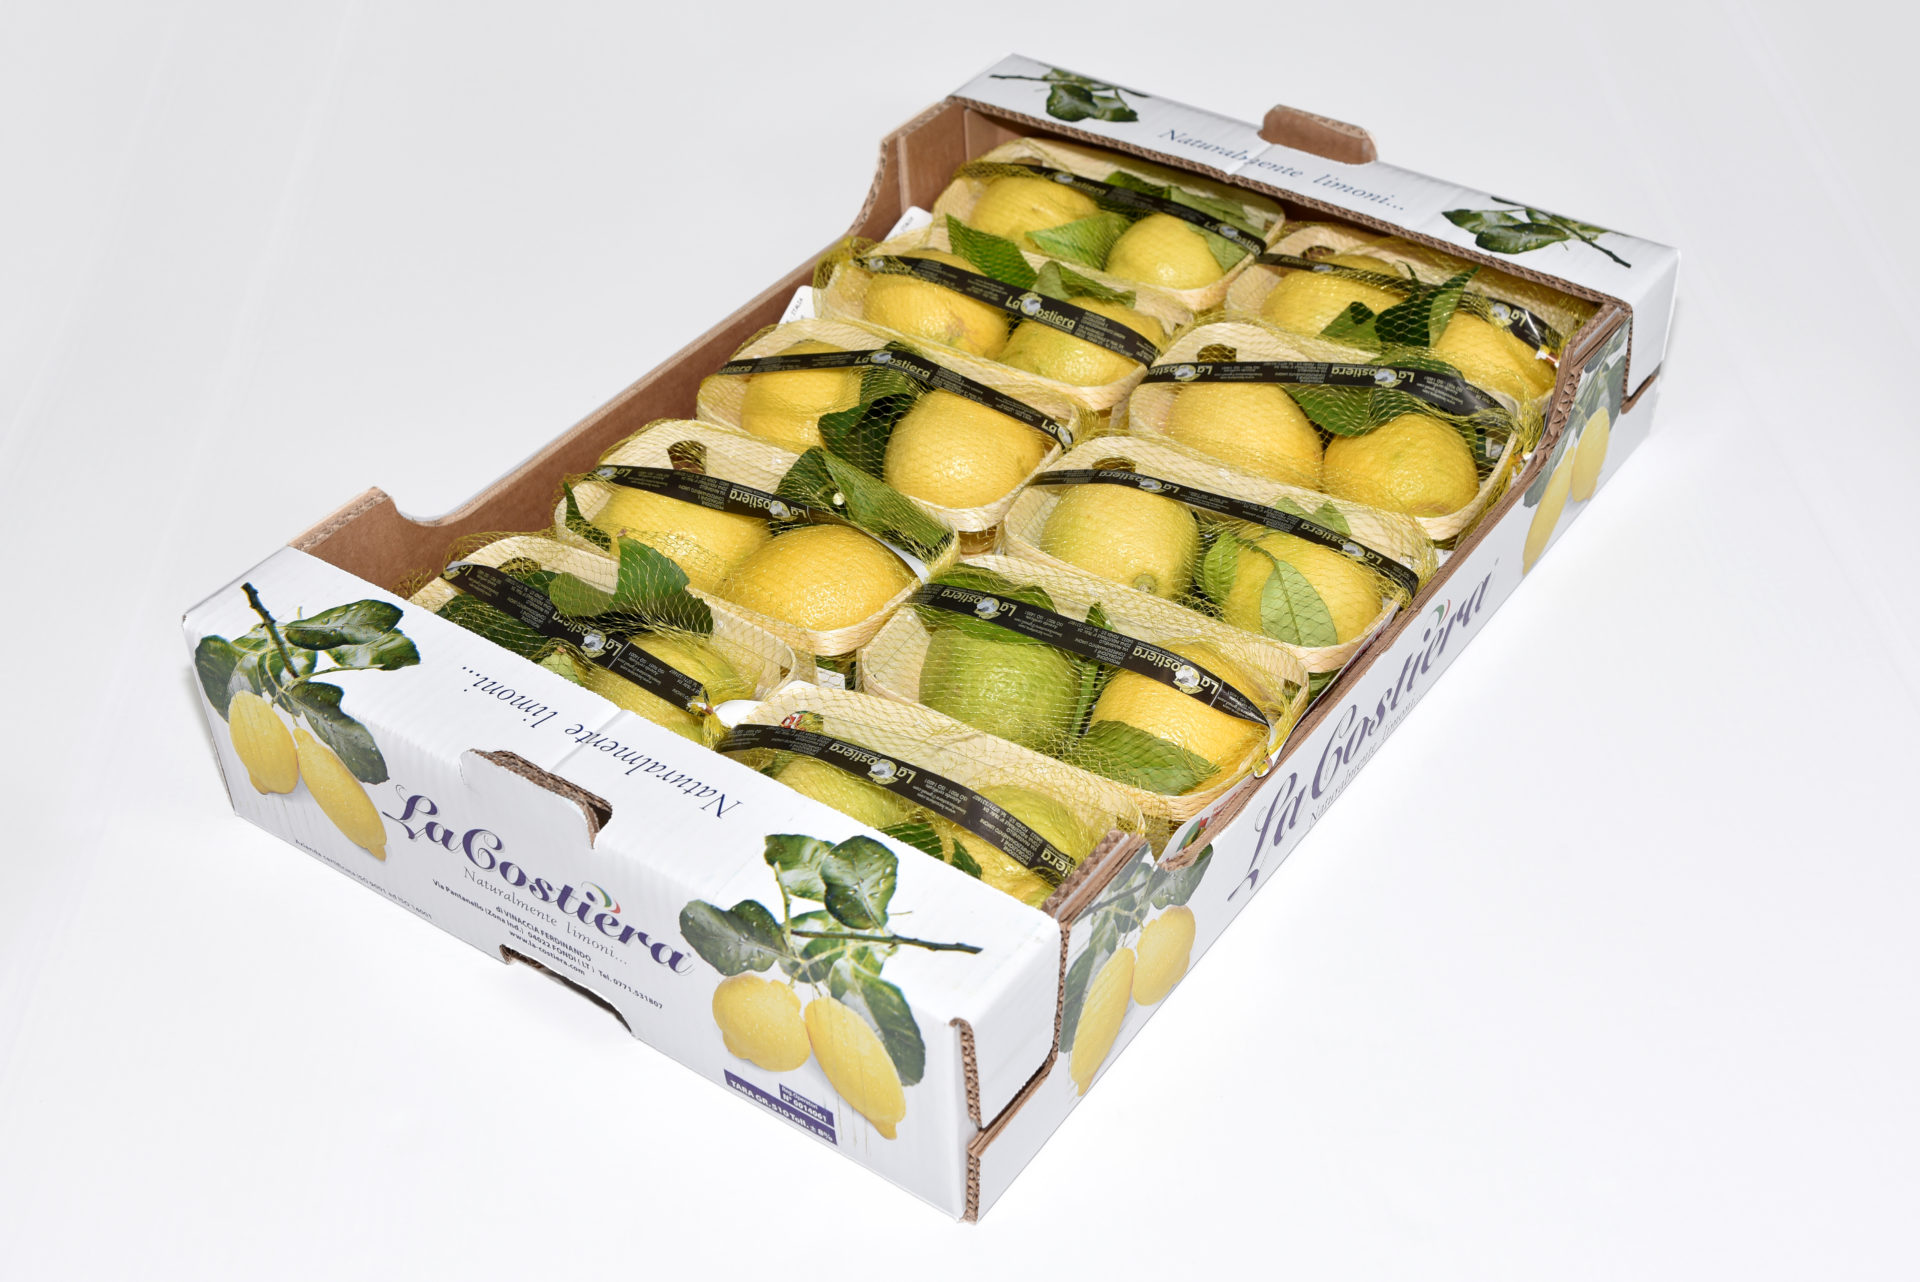 Lemon Primo Fiore leaf caliber 3 category 1 5Kg